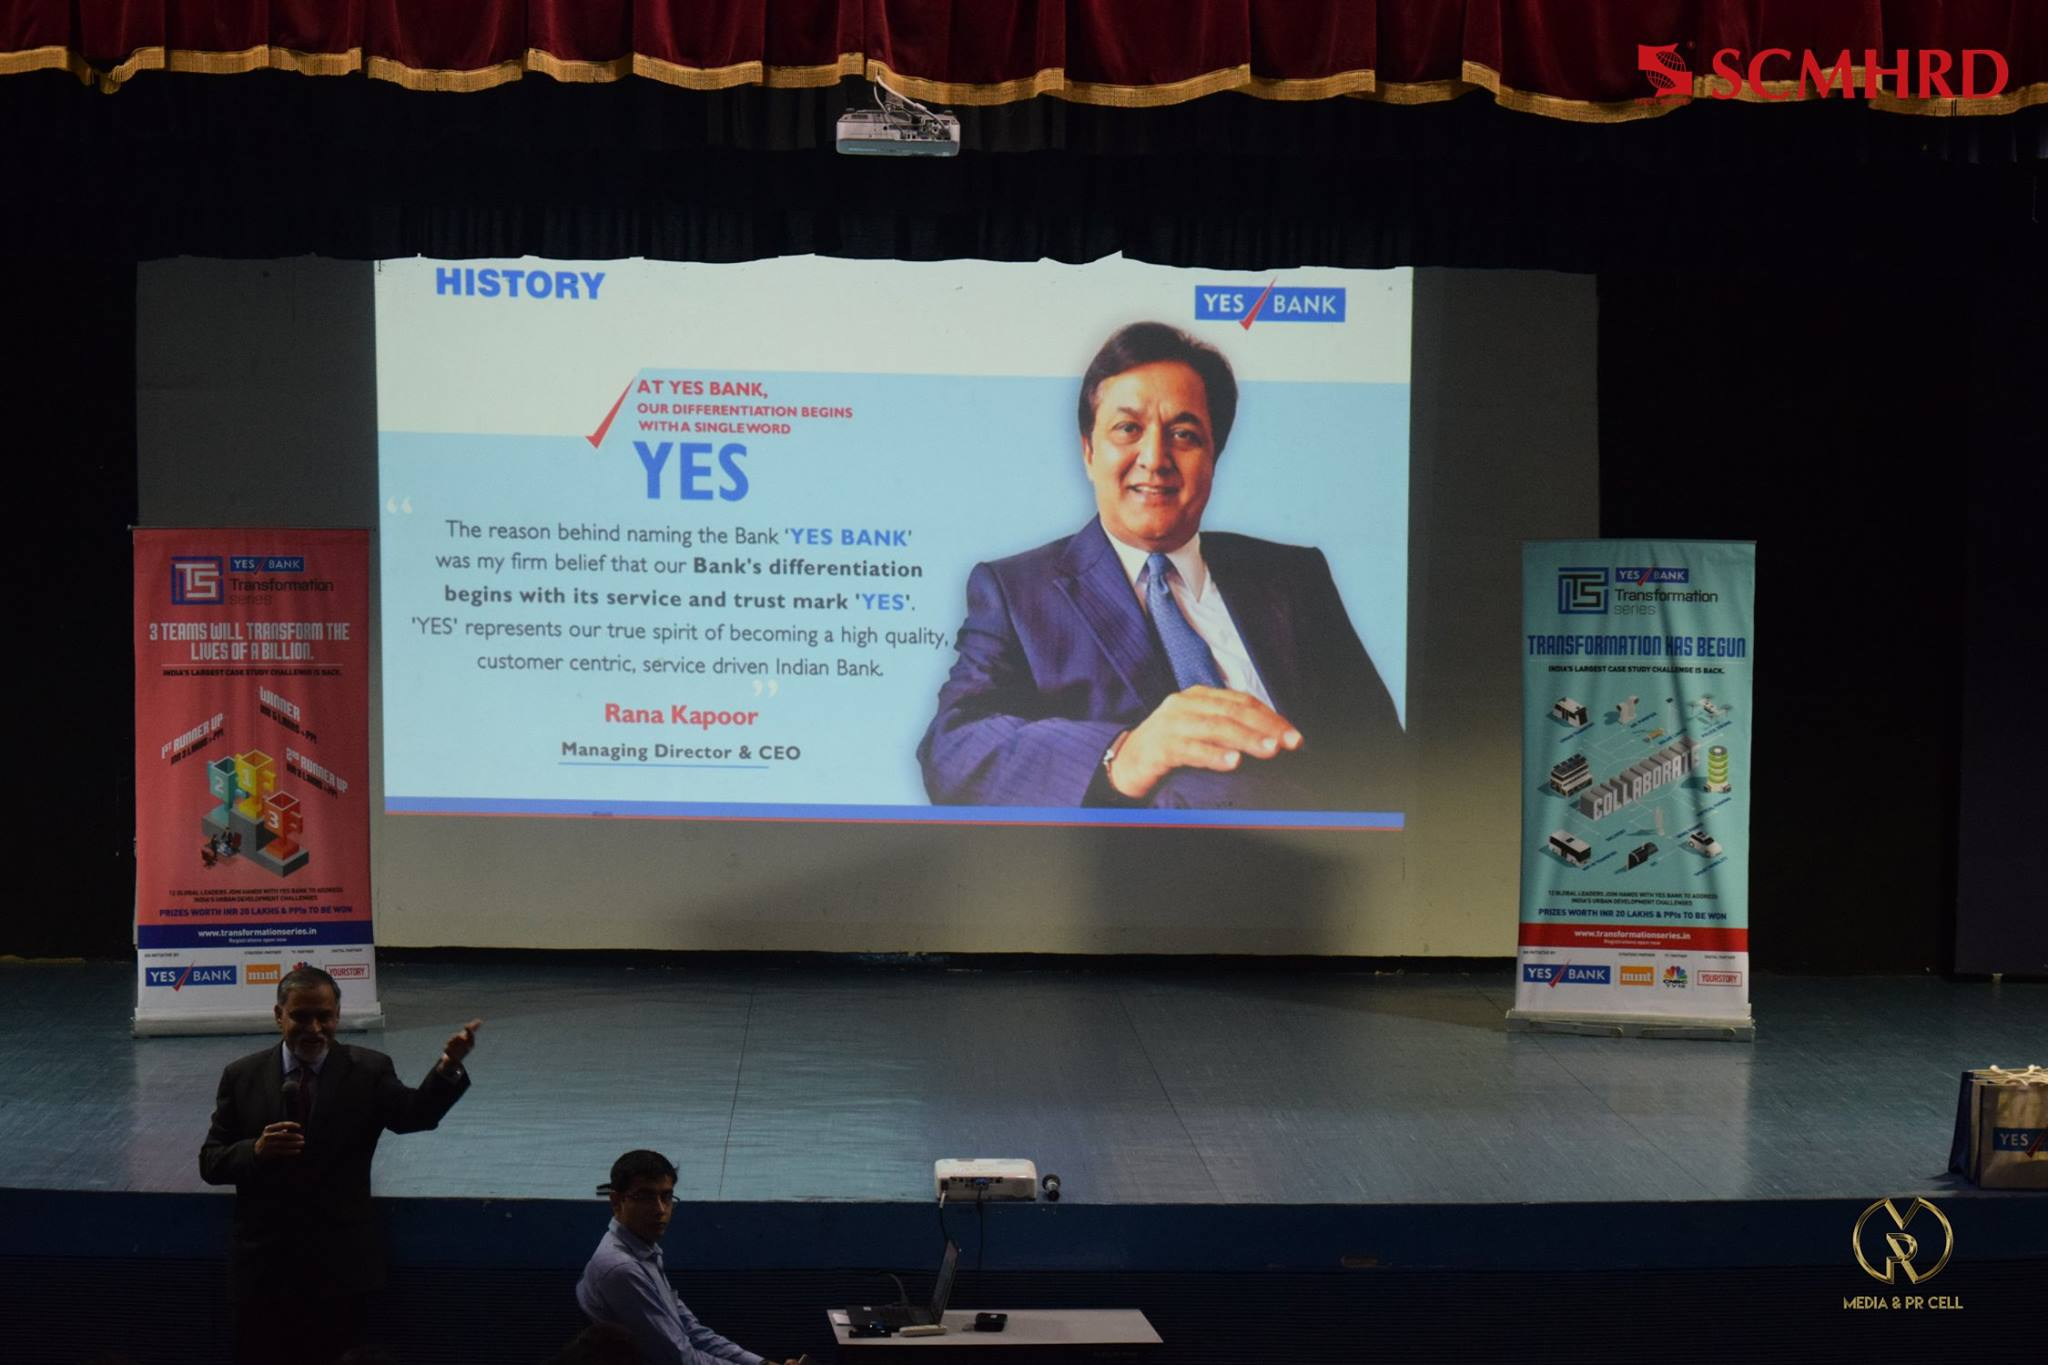 SCMHRD yes bank